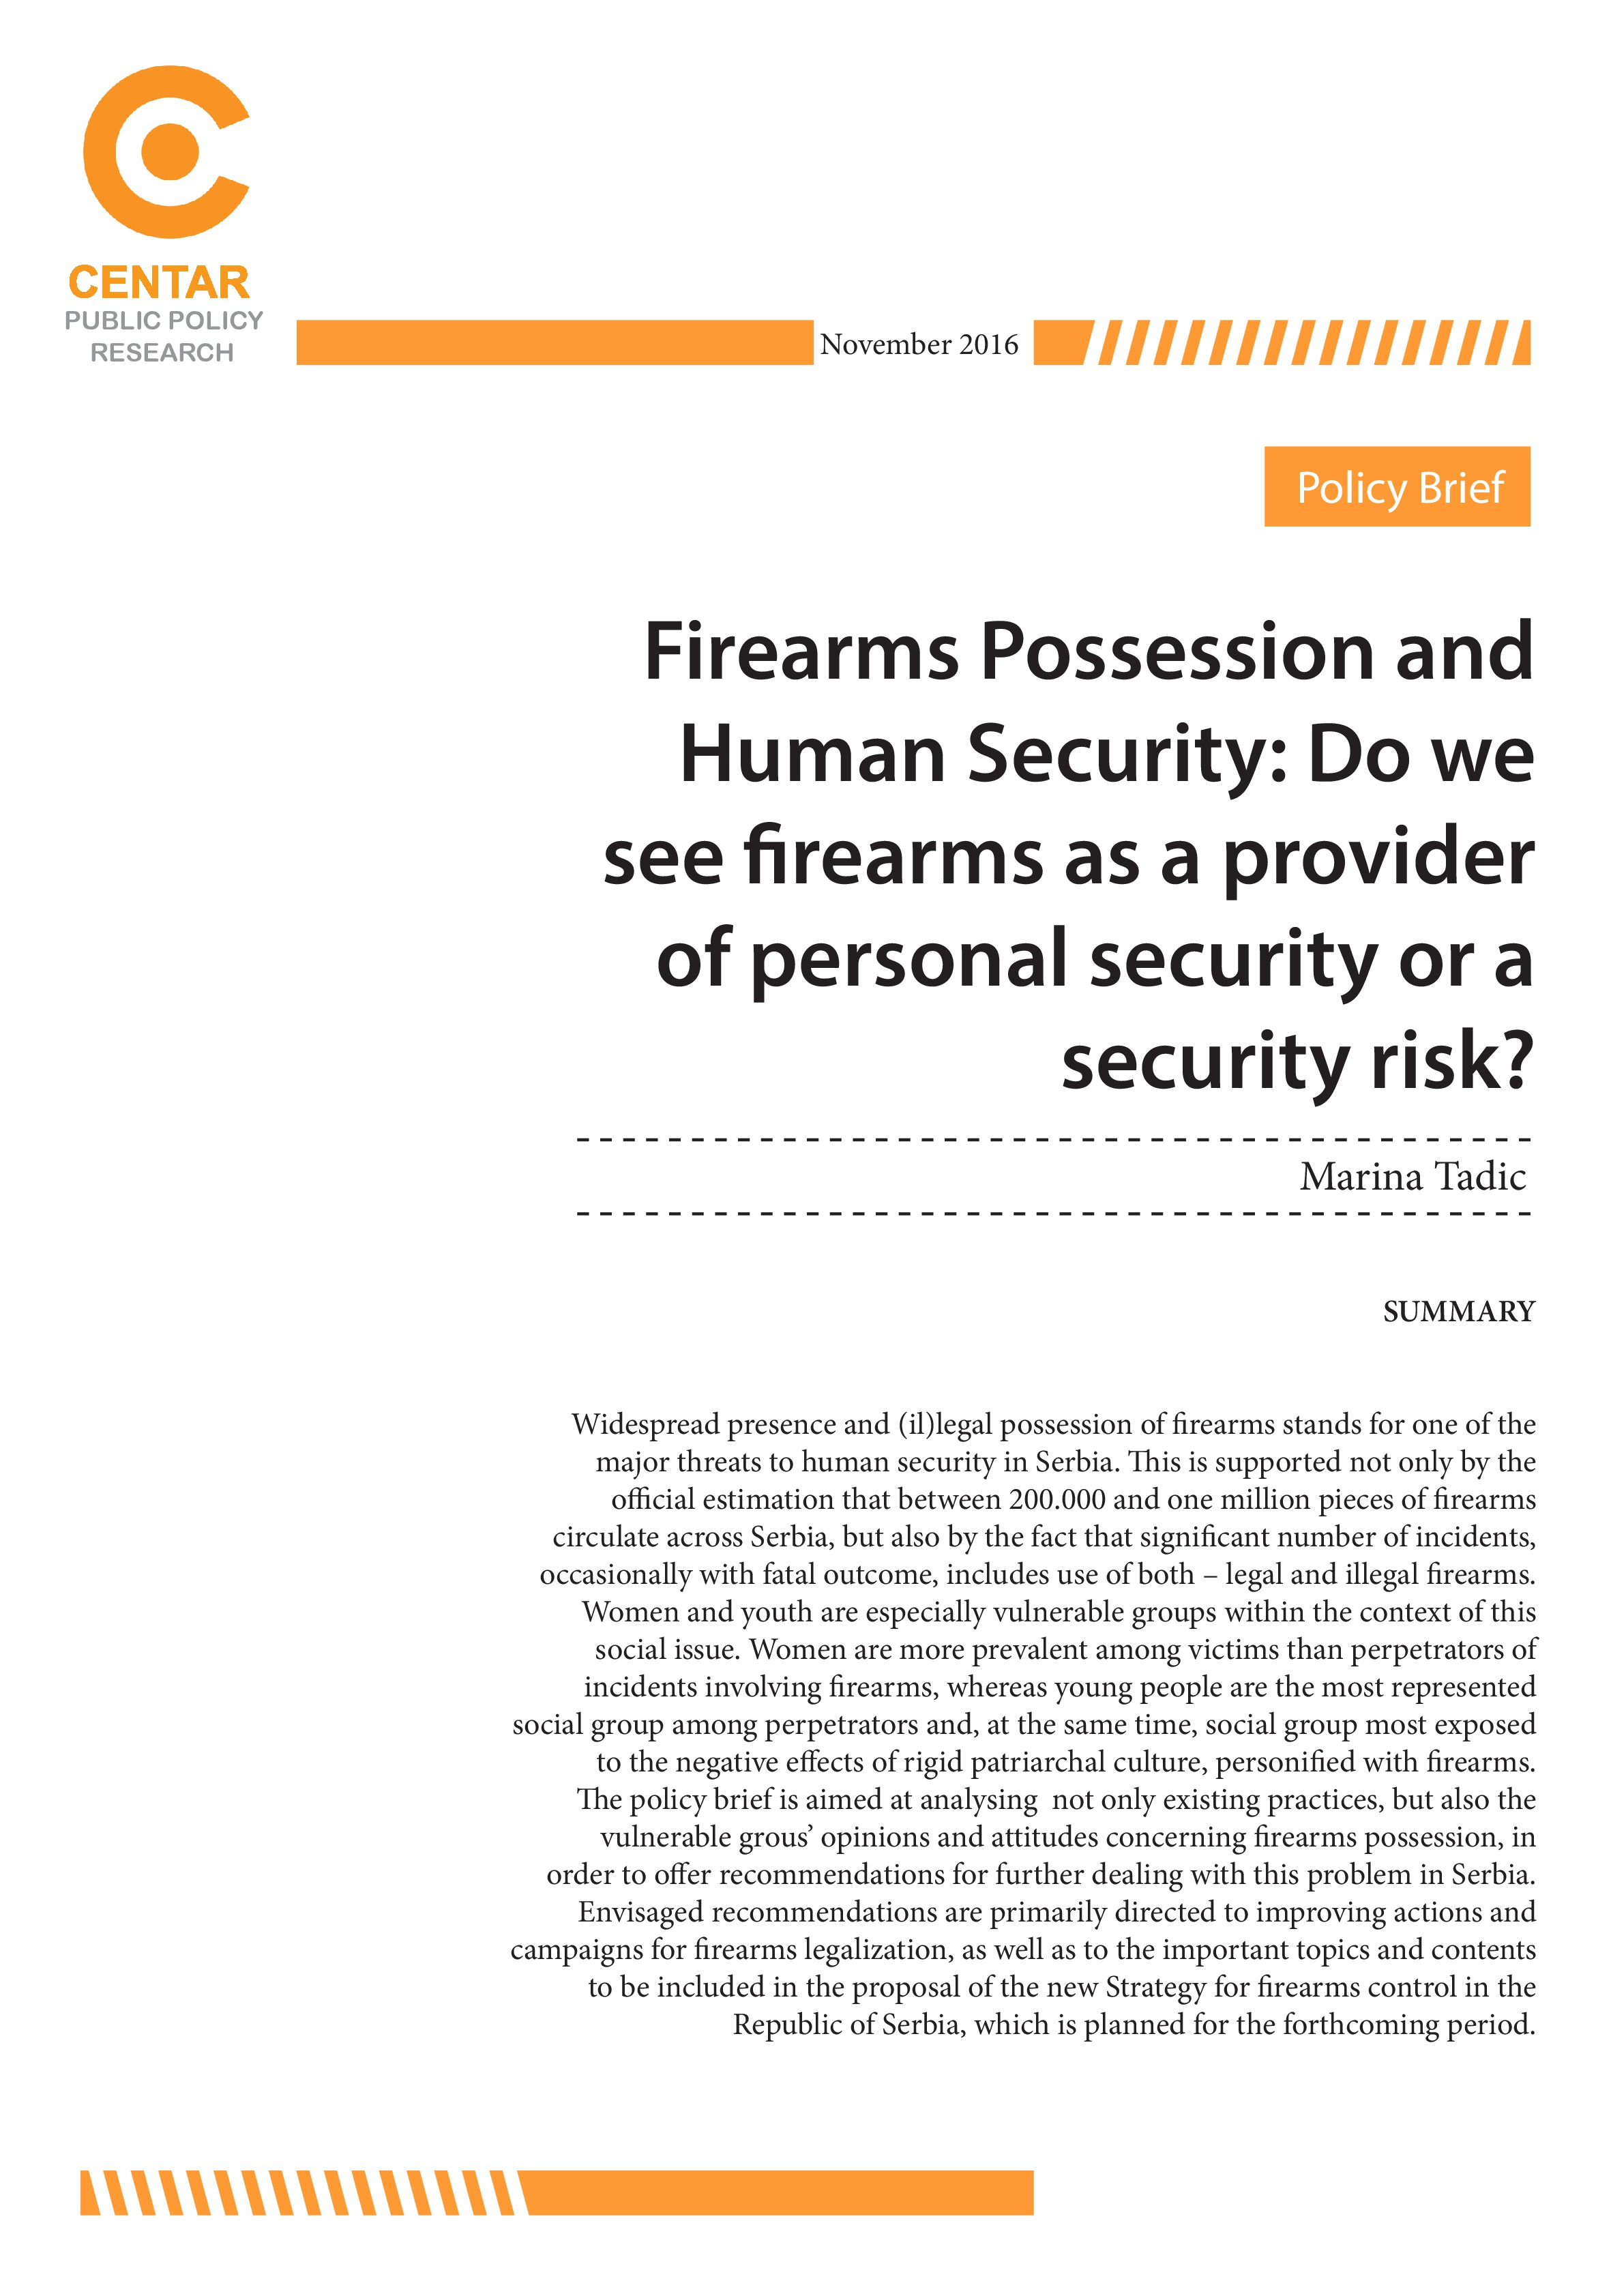 Firearms Possession and Human Security: Do we see firearms as a provider of personal security or a security risk?